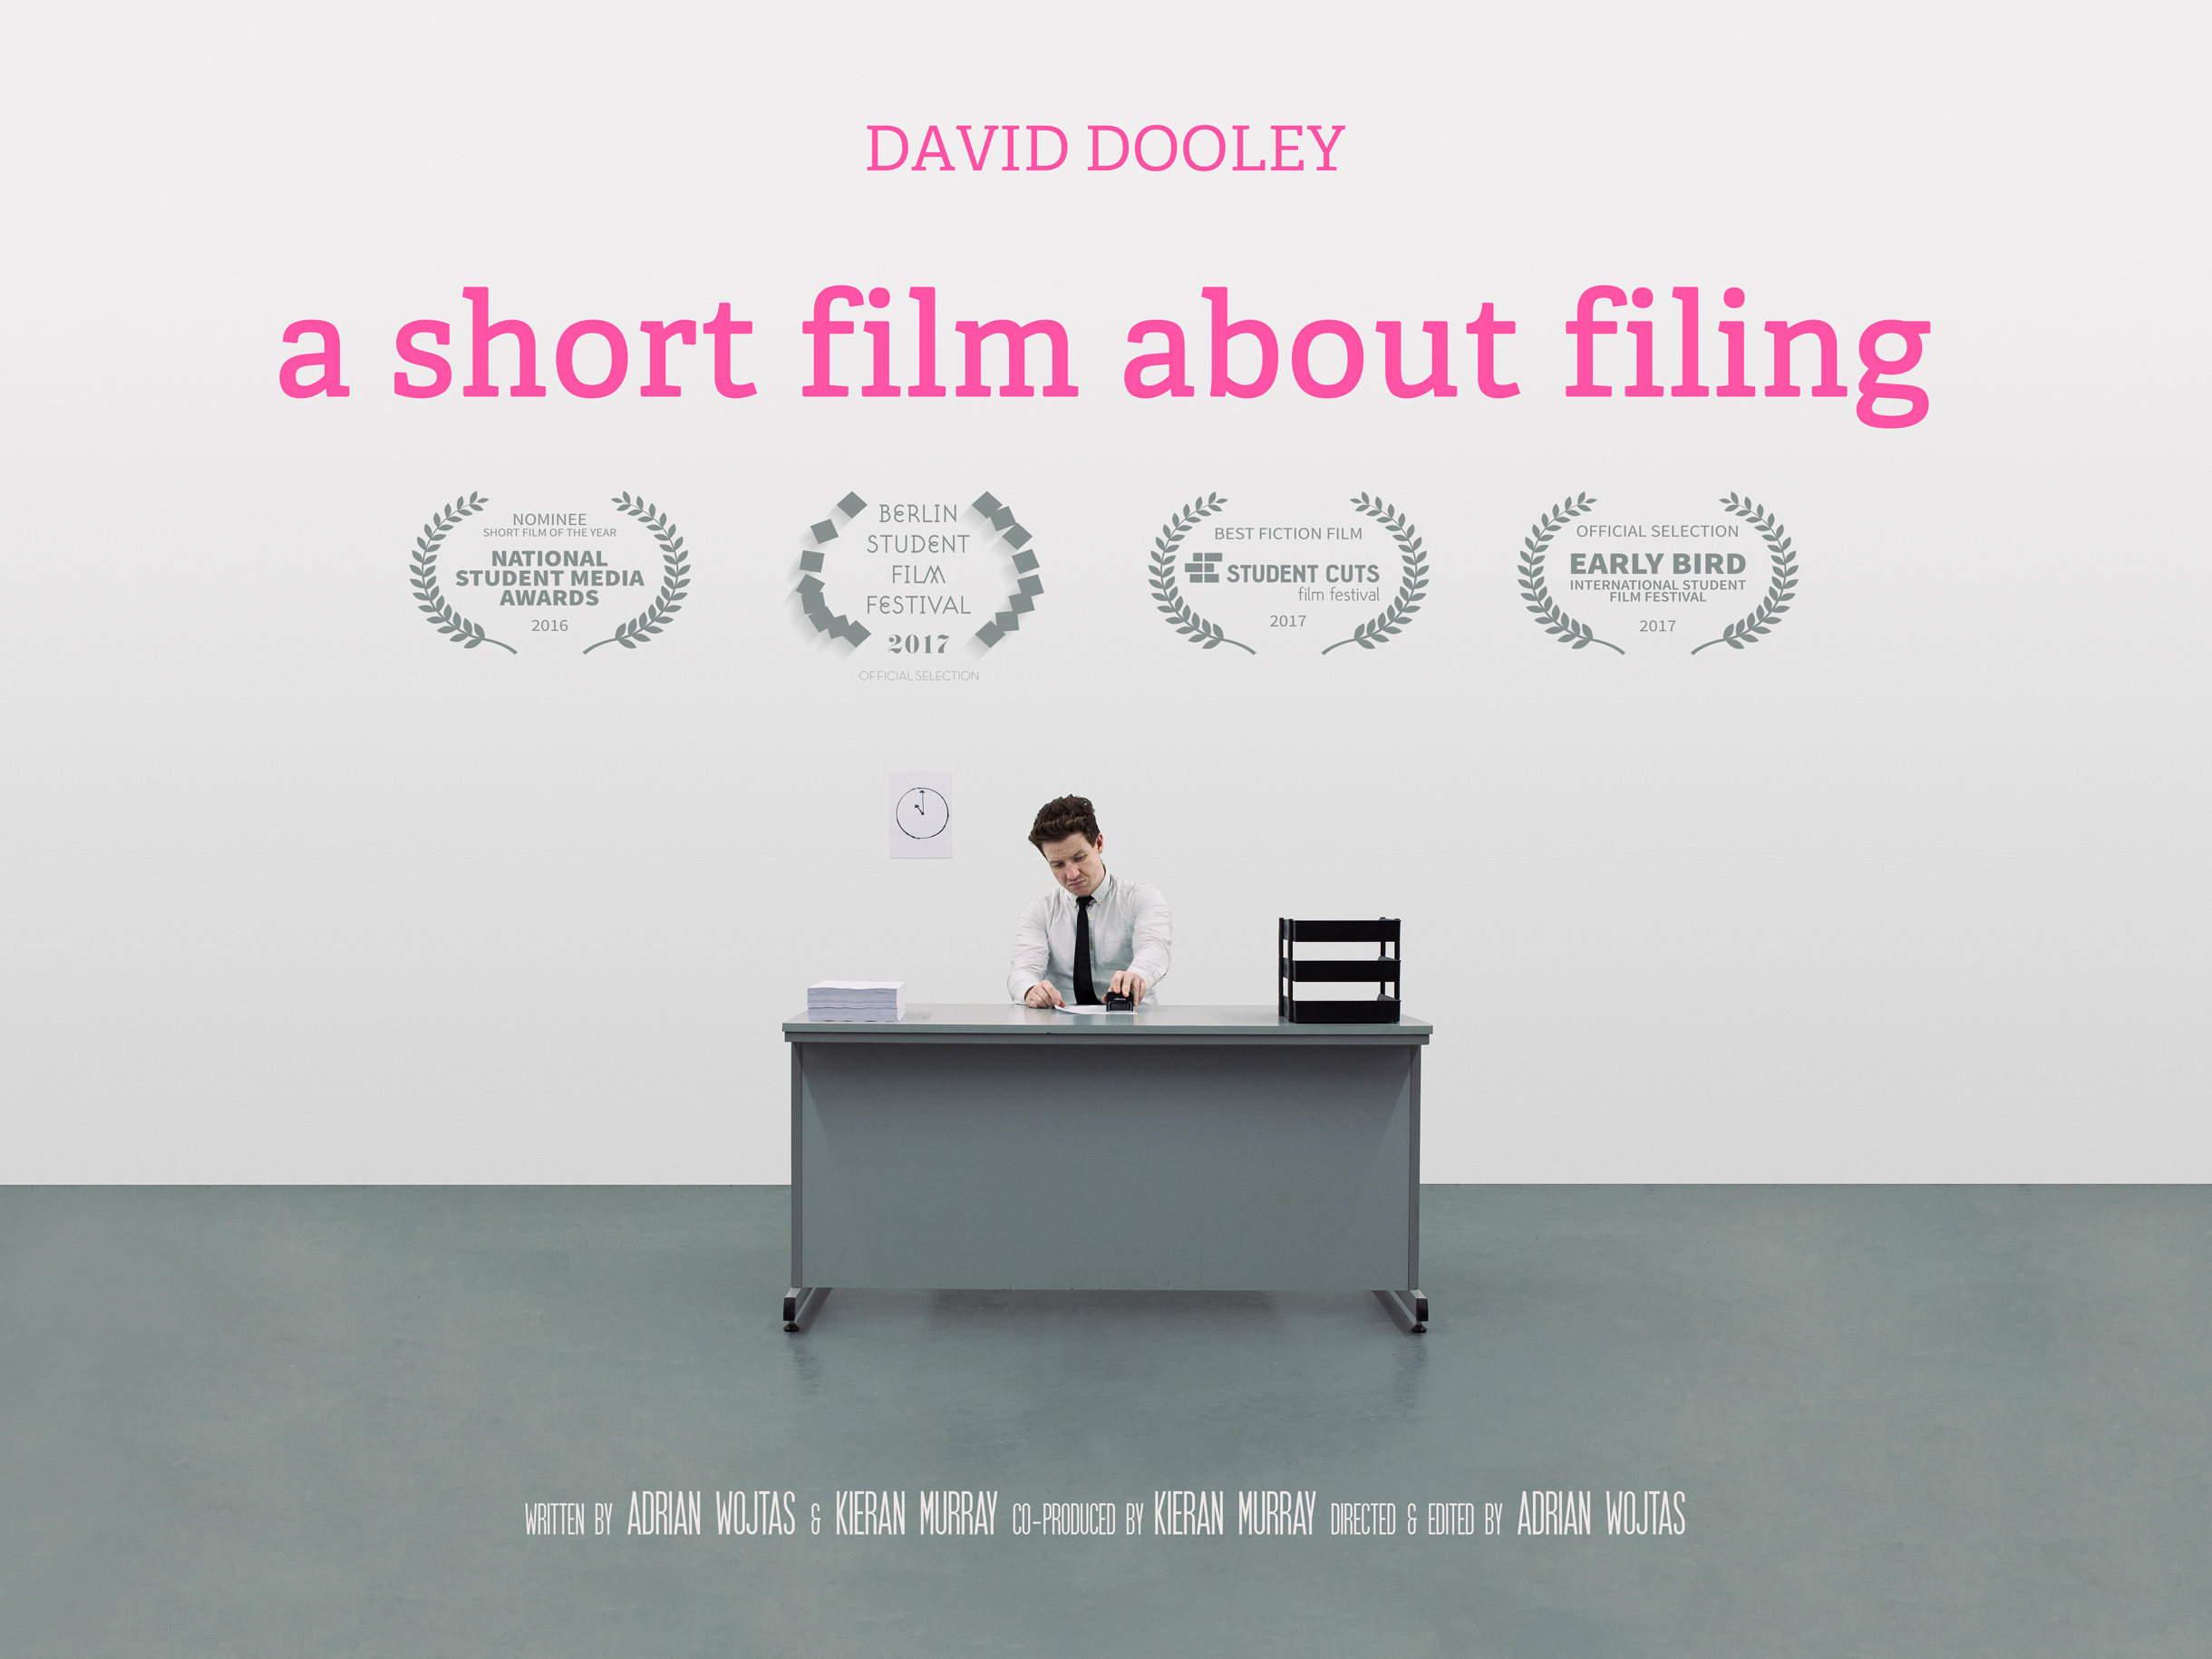 a short film about filing